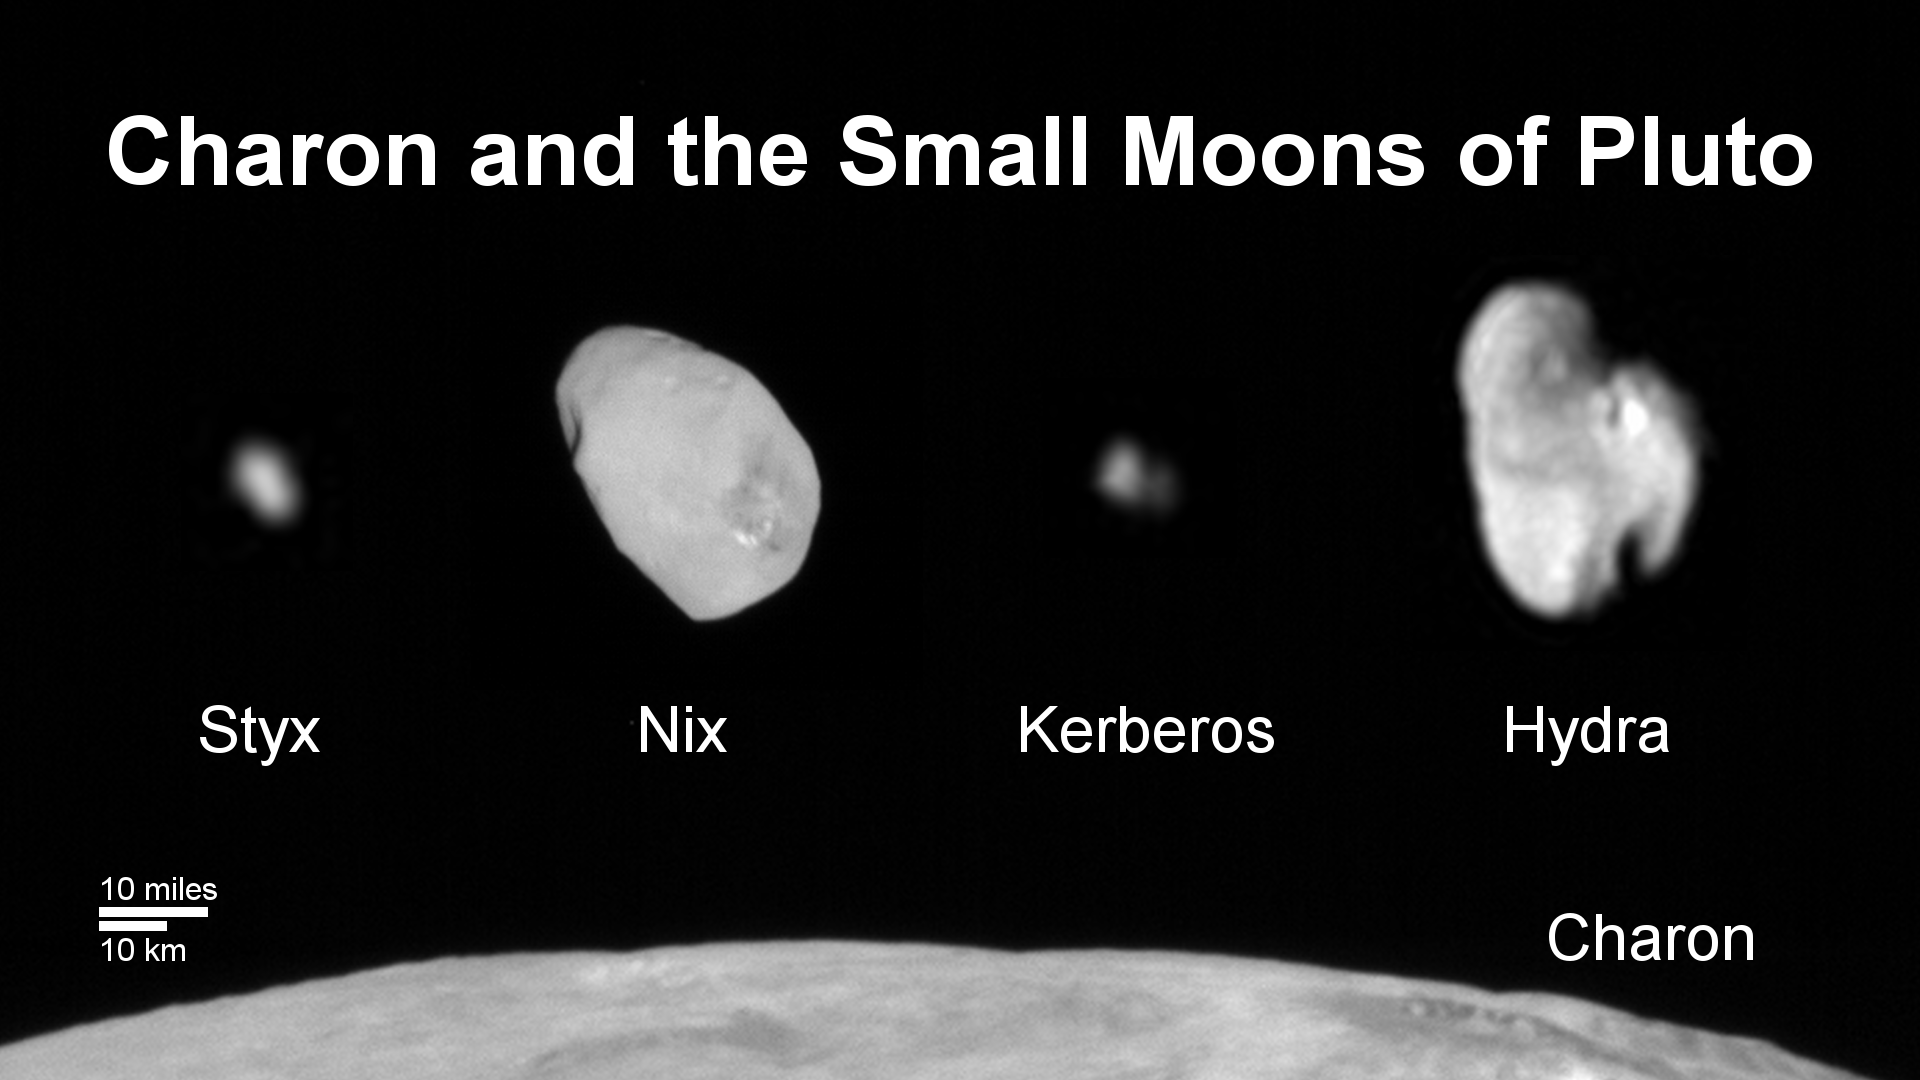 nh-pluto_moons_family_portrait.png